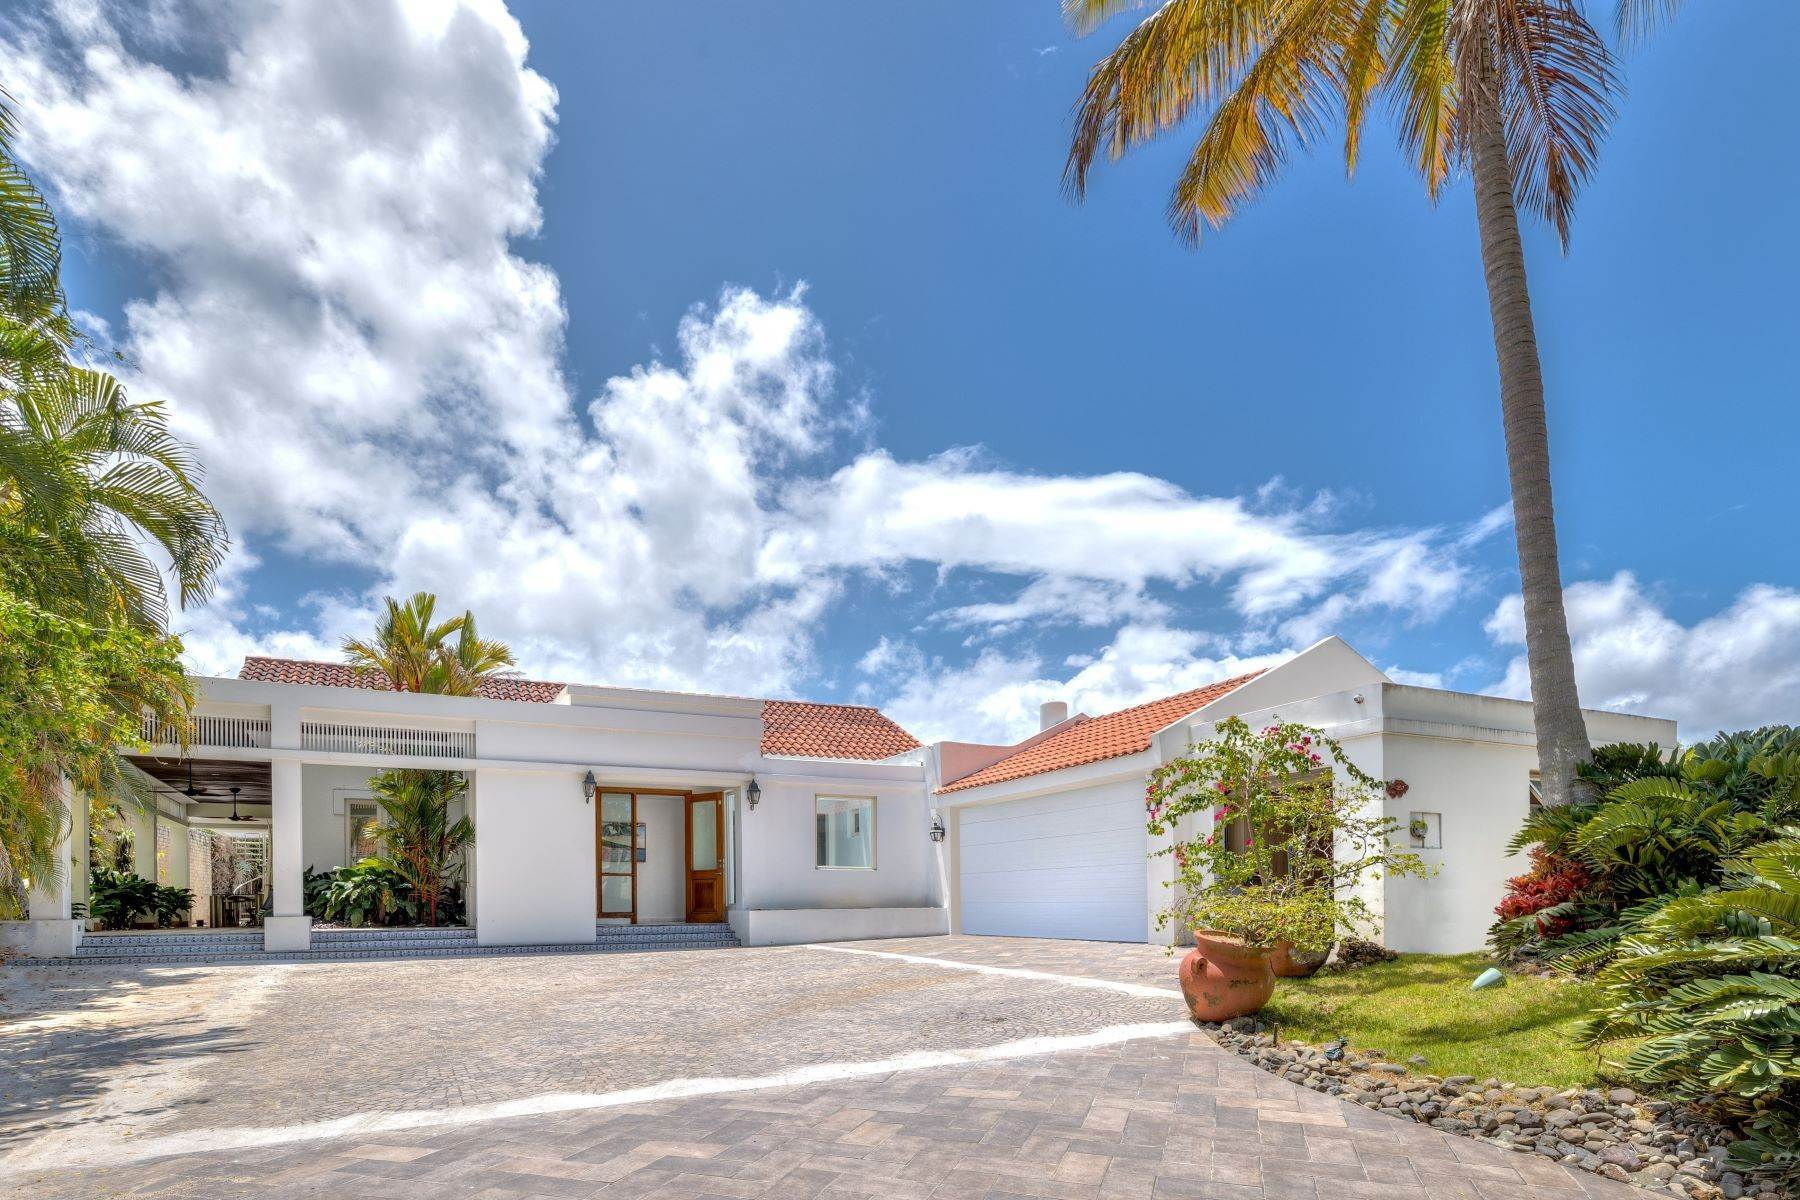 Single Family Homes for Sale at One of a Kind in Dorado Beach East 357 Dorado Beach East Dorado Beach, 00646 Puerto Rico